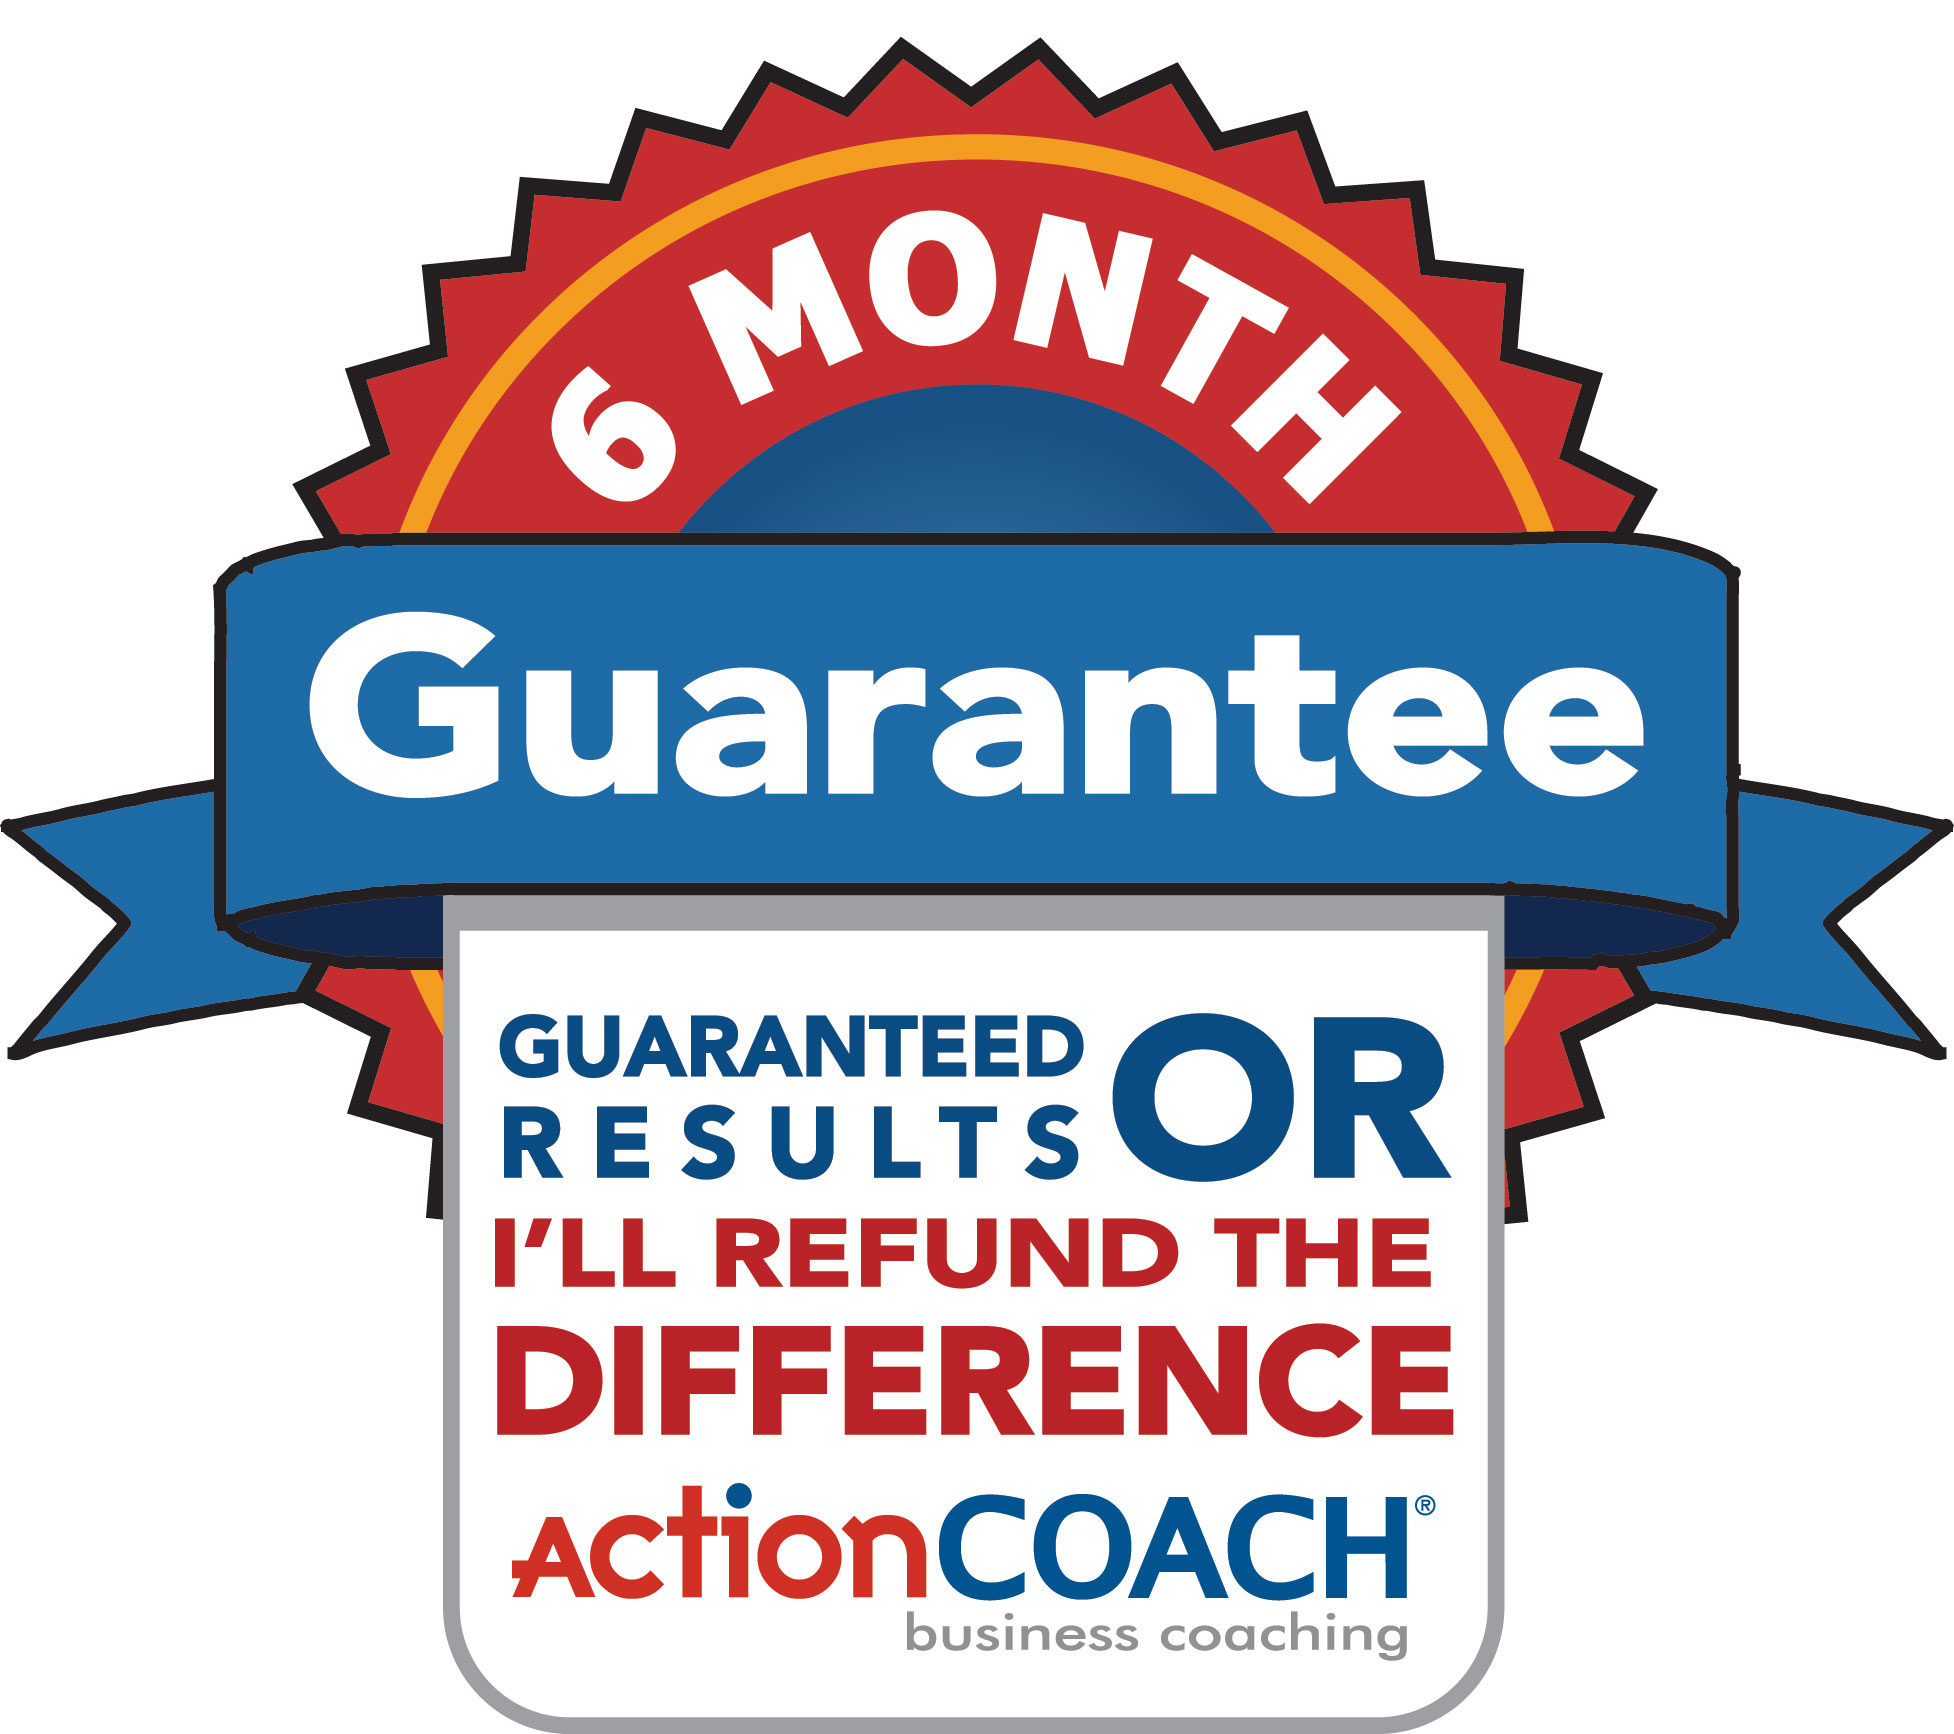 ActionCoach 6 month ROI Guarantee